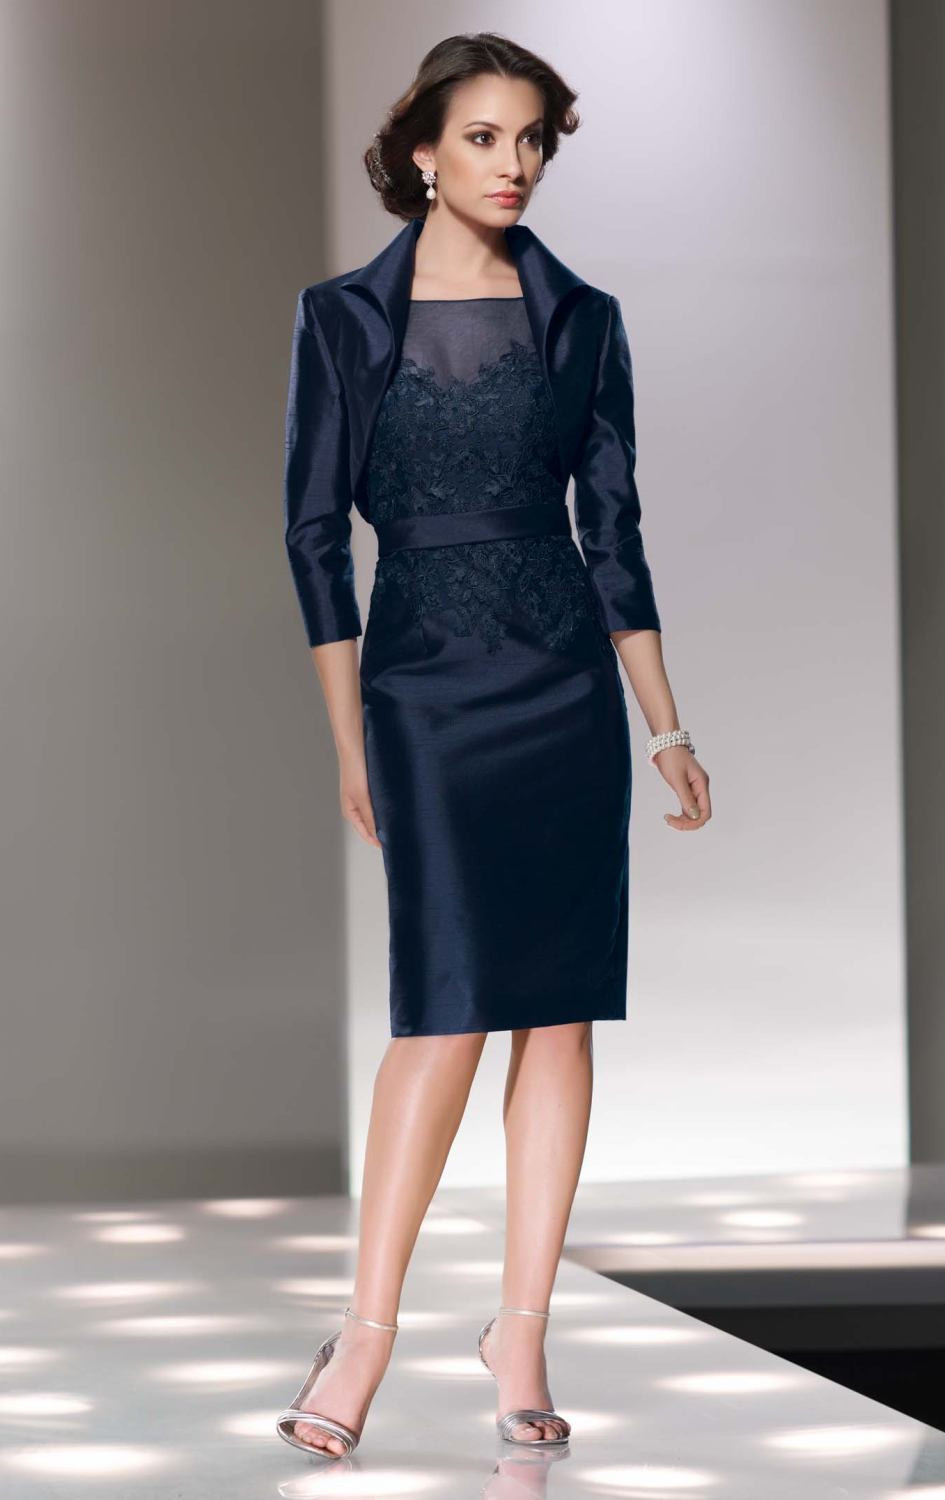 dresses and jackets for wedding guests page 3 - Dress